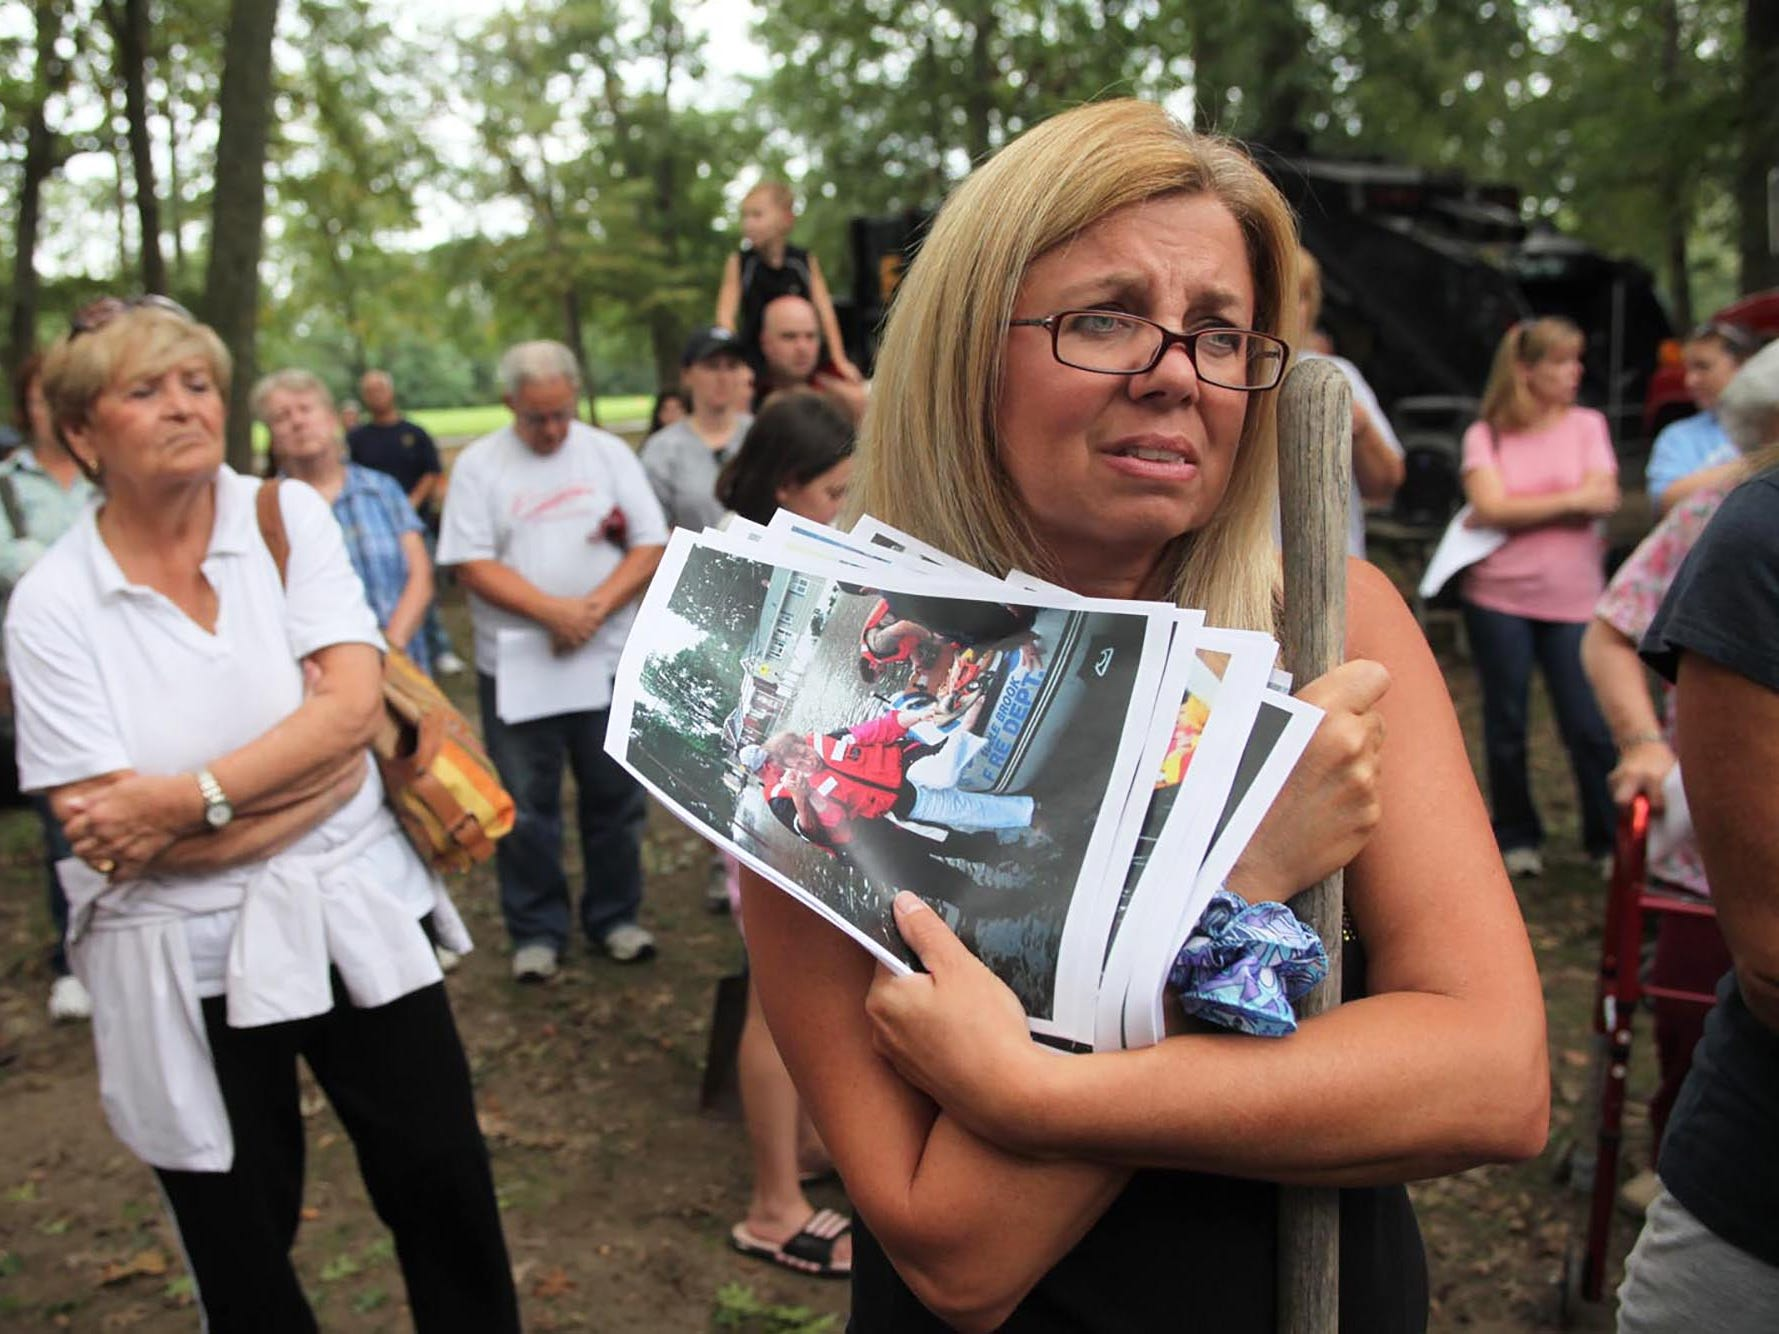 Christy Collichio, of Paramus, holds photographs of a flooded Rochelle Parkway in Saddle Brook, where her mother was evacuated from during hurricane Irene. About 200 local residents came out to demand that a solution be found to prevent the flooding of homes near the Saddle Brook River Sunday afternoon at Saddle River Park.